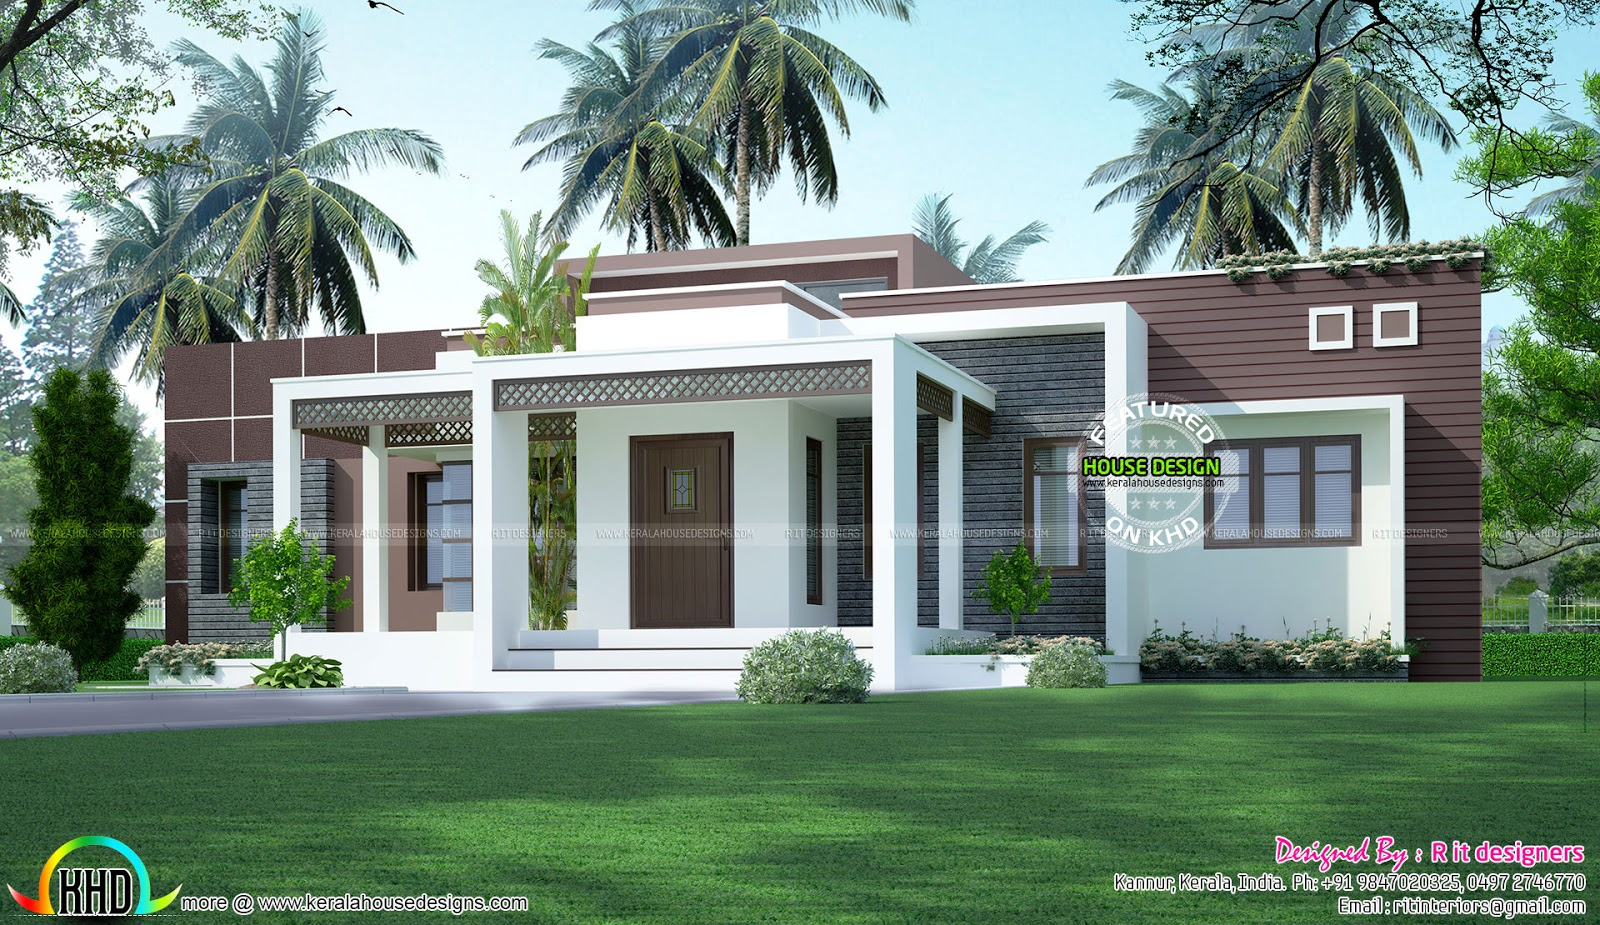 New home design kerala home design ideas for New home designs kerala